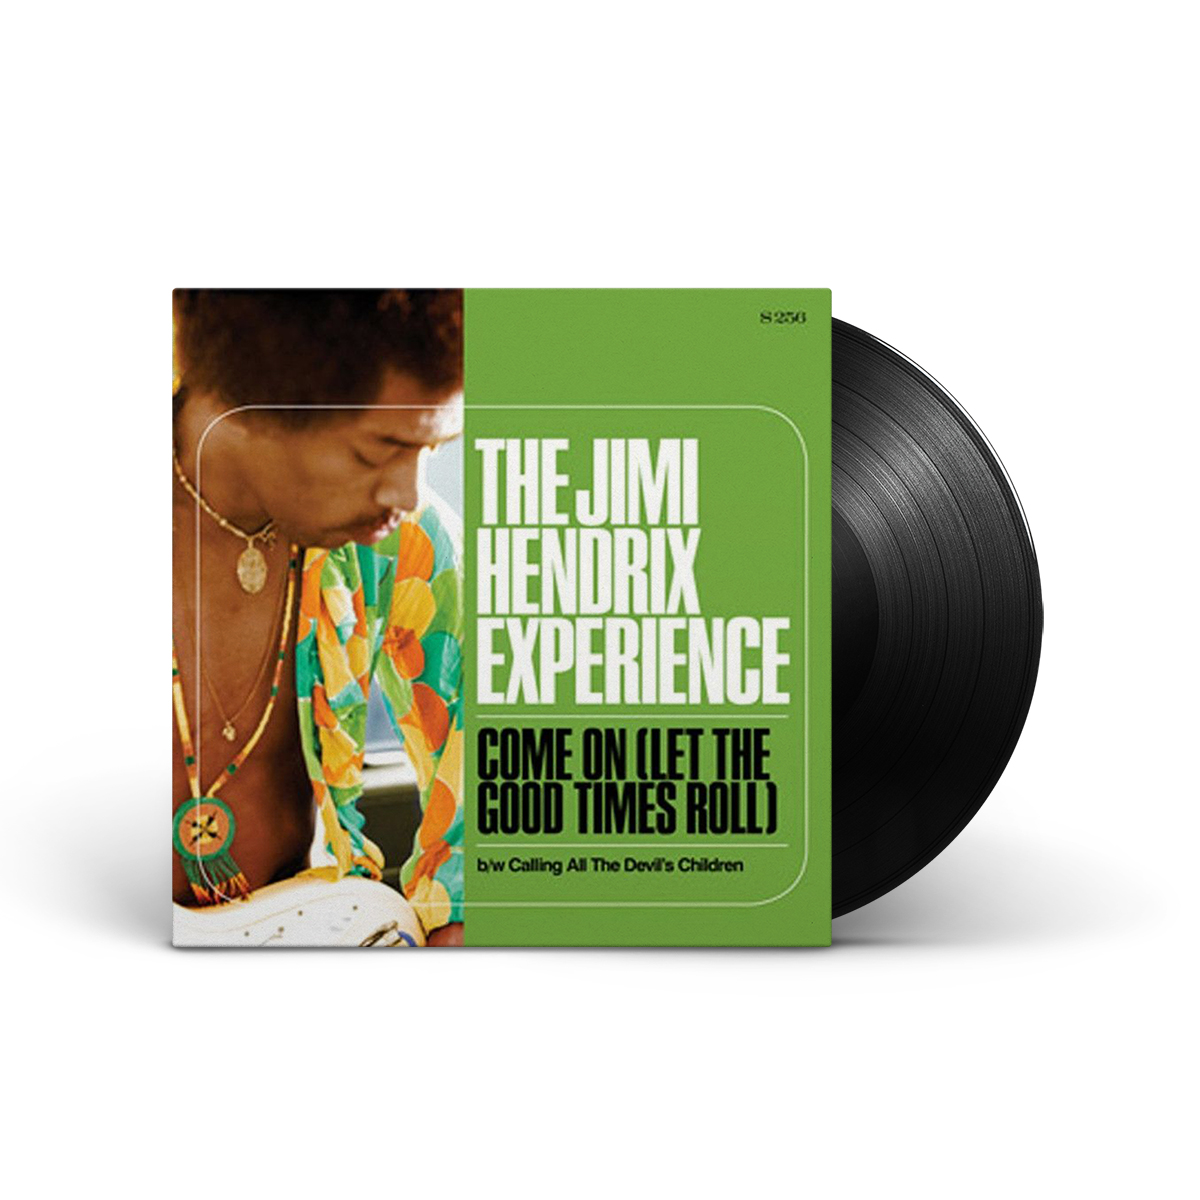 "Jimi Hendrix - Come On (Let the Good Times Roll)/Calling All the Devil's Children 7"" LP"